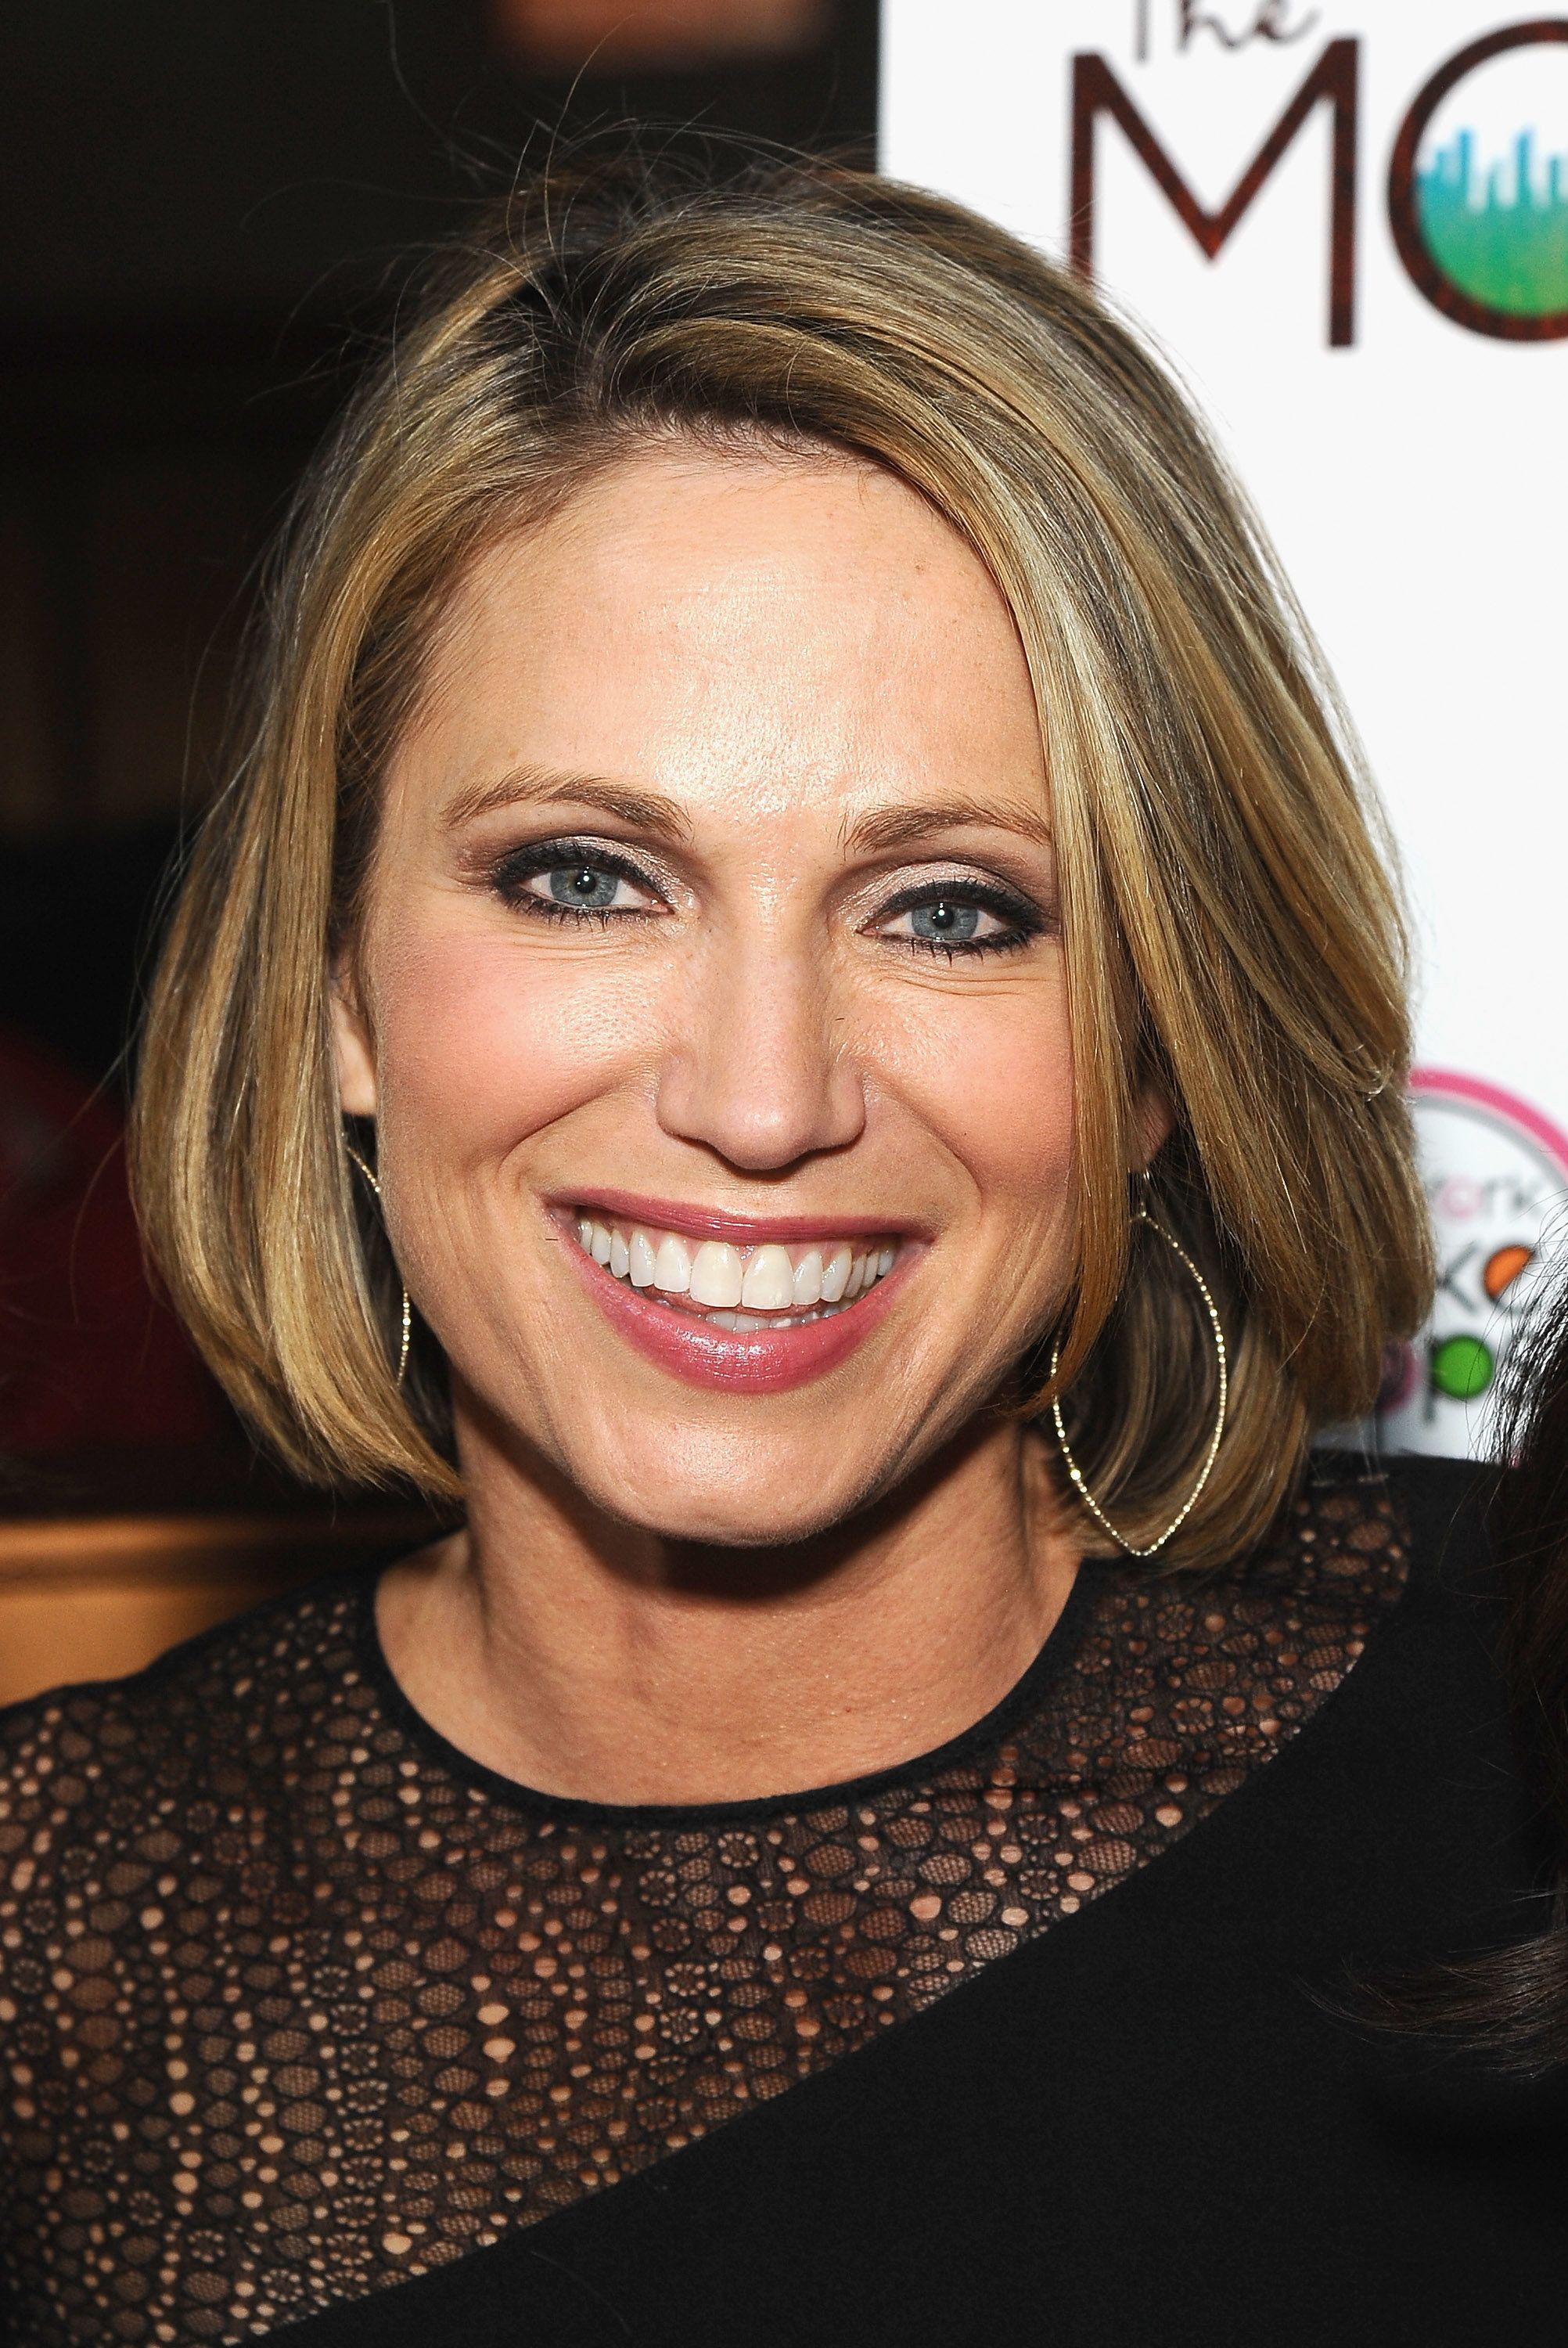 NEW YORK, NEW YORK - APRIL 06:  TV news journalist Amy Robach attends 'Sh*TTY Mom's For All Seasons' release party at Haus on April 6, 2016 in New York City.  (Photo by Gary Gershoff/Getty Images)